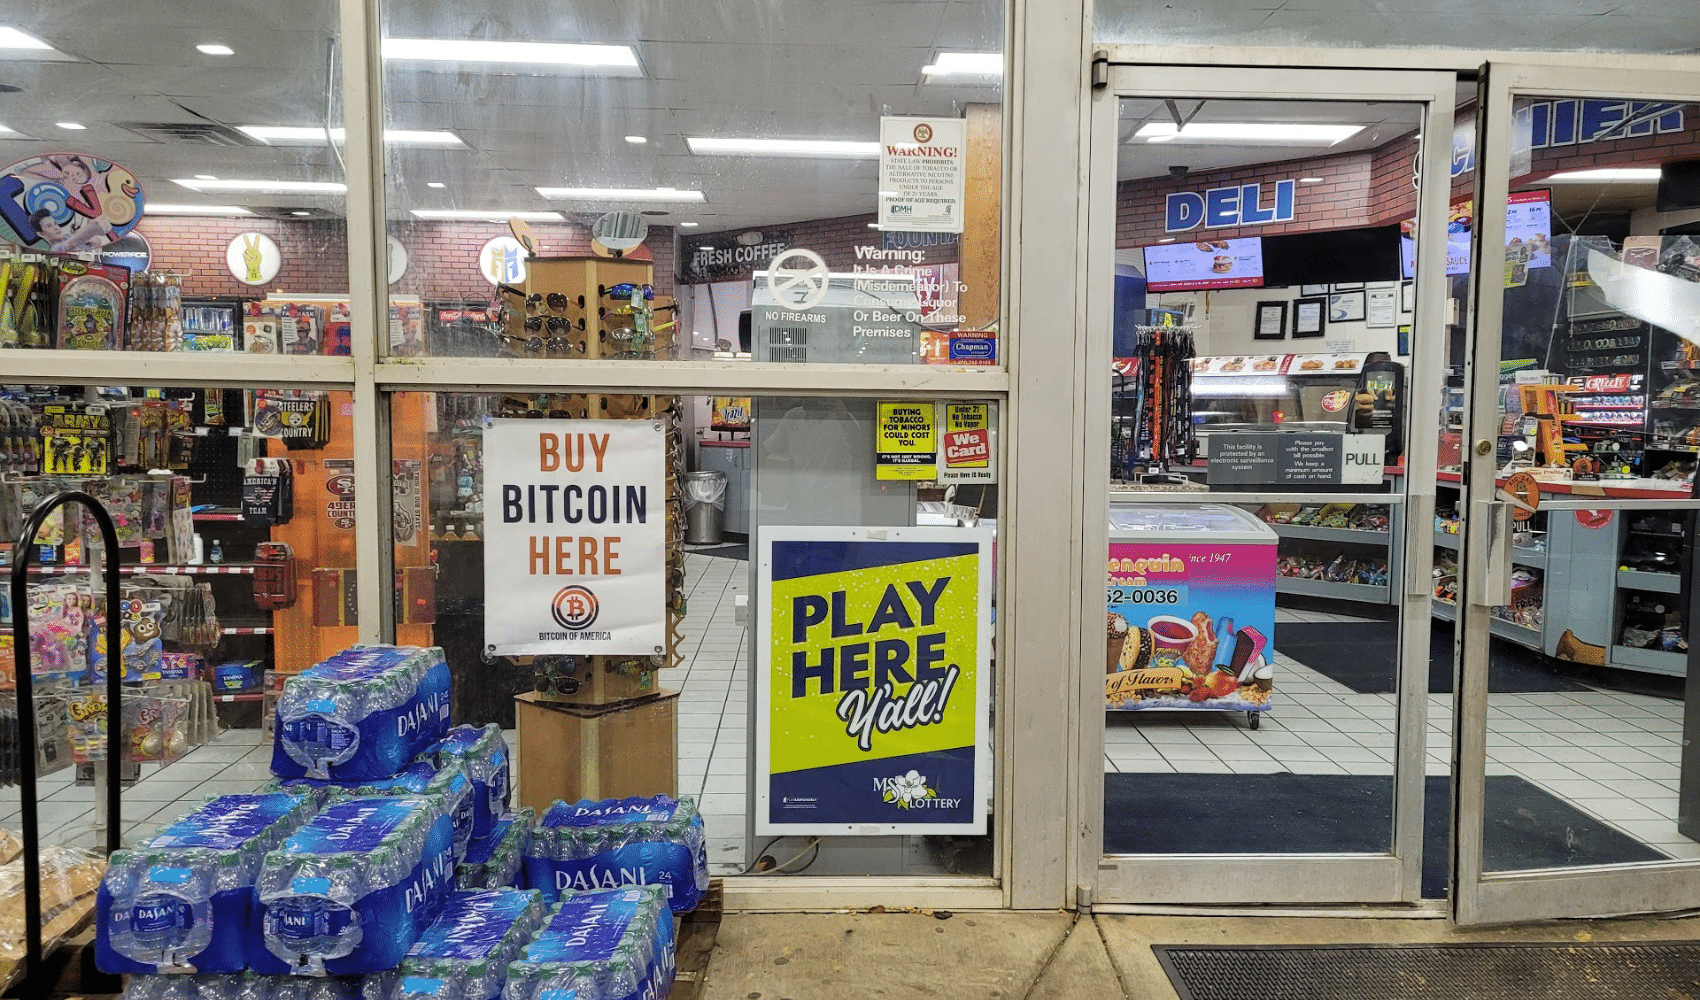 Bitcoin Expansion: An Increase in ATMs